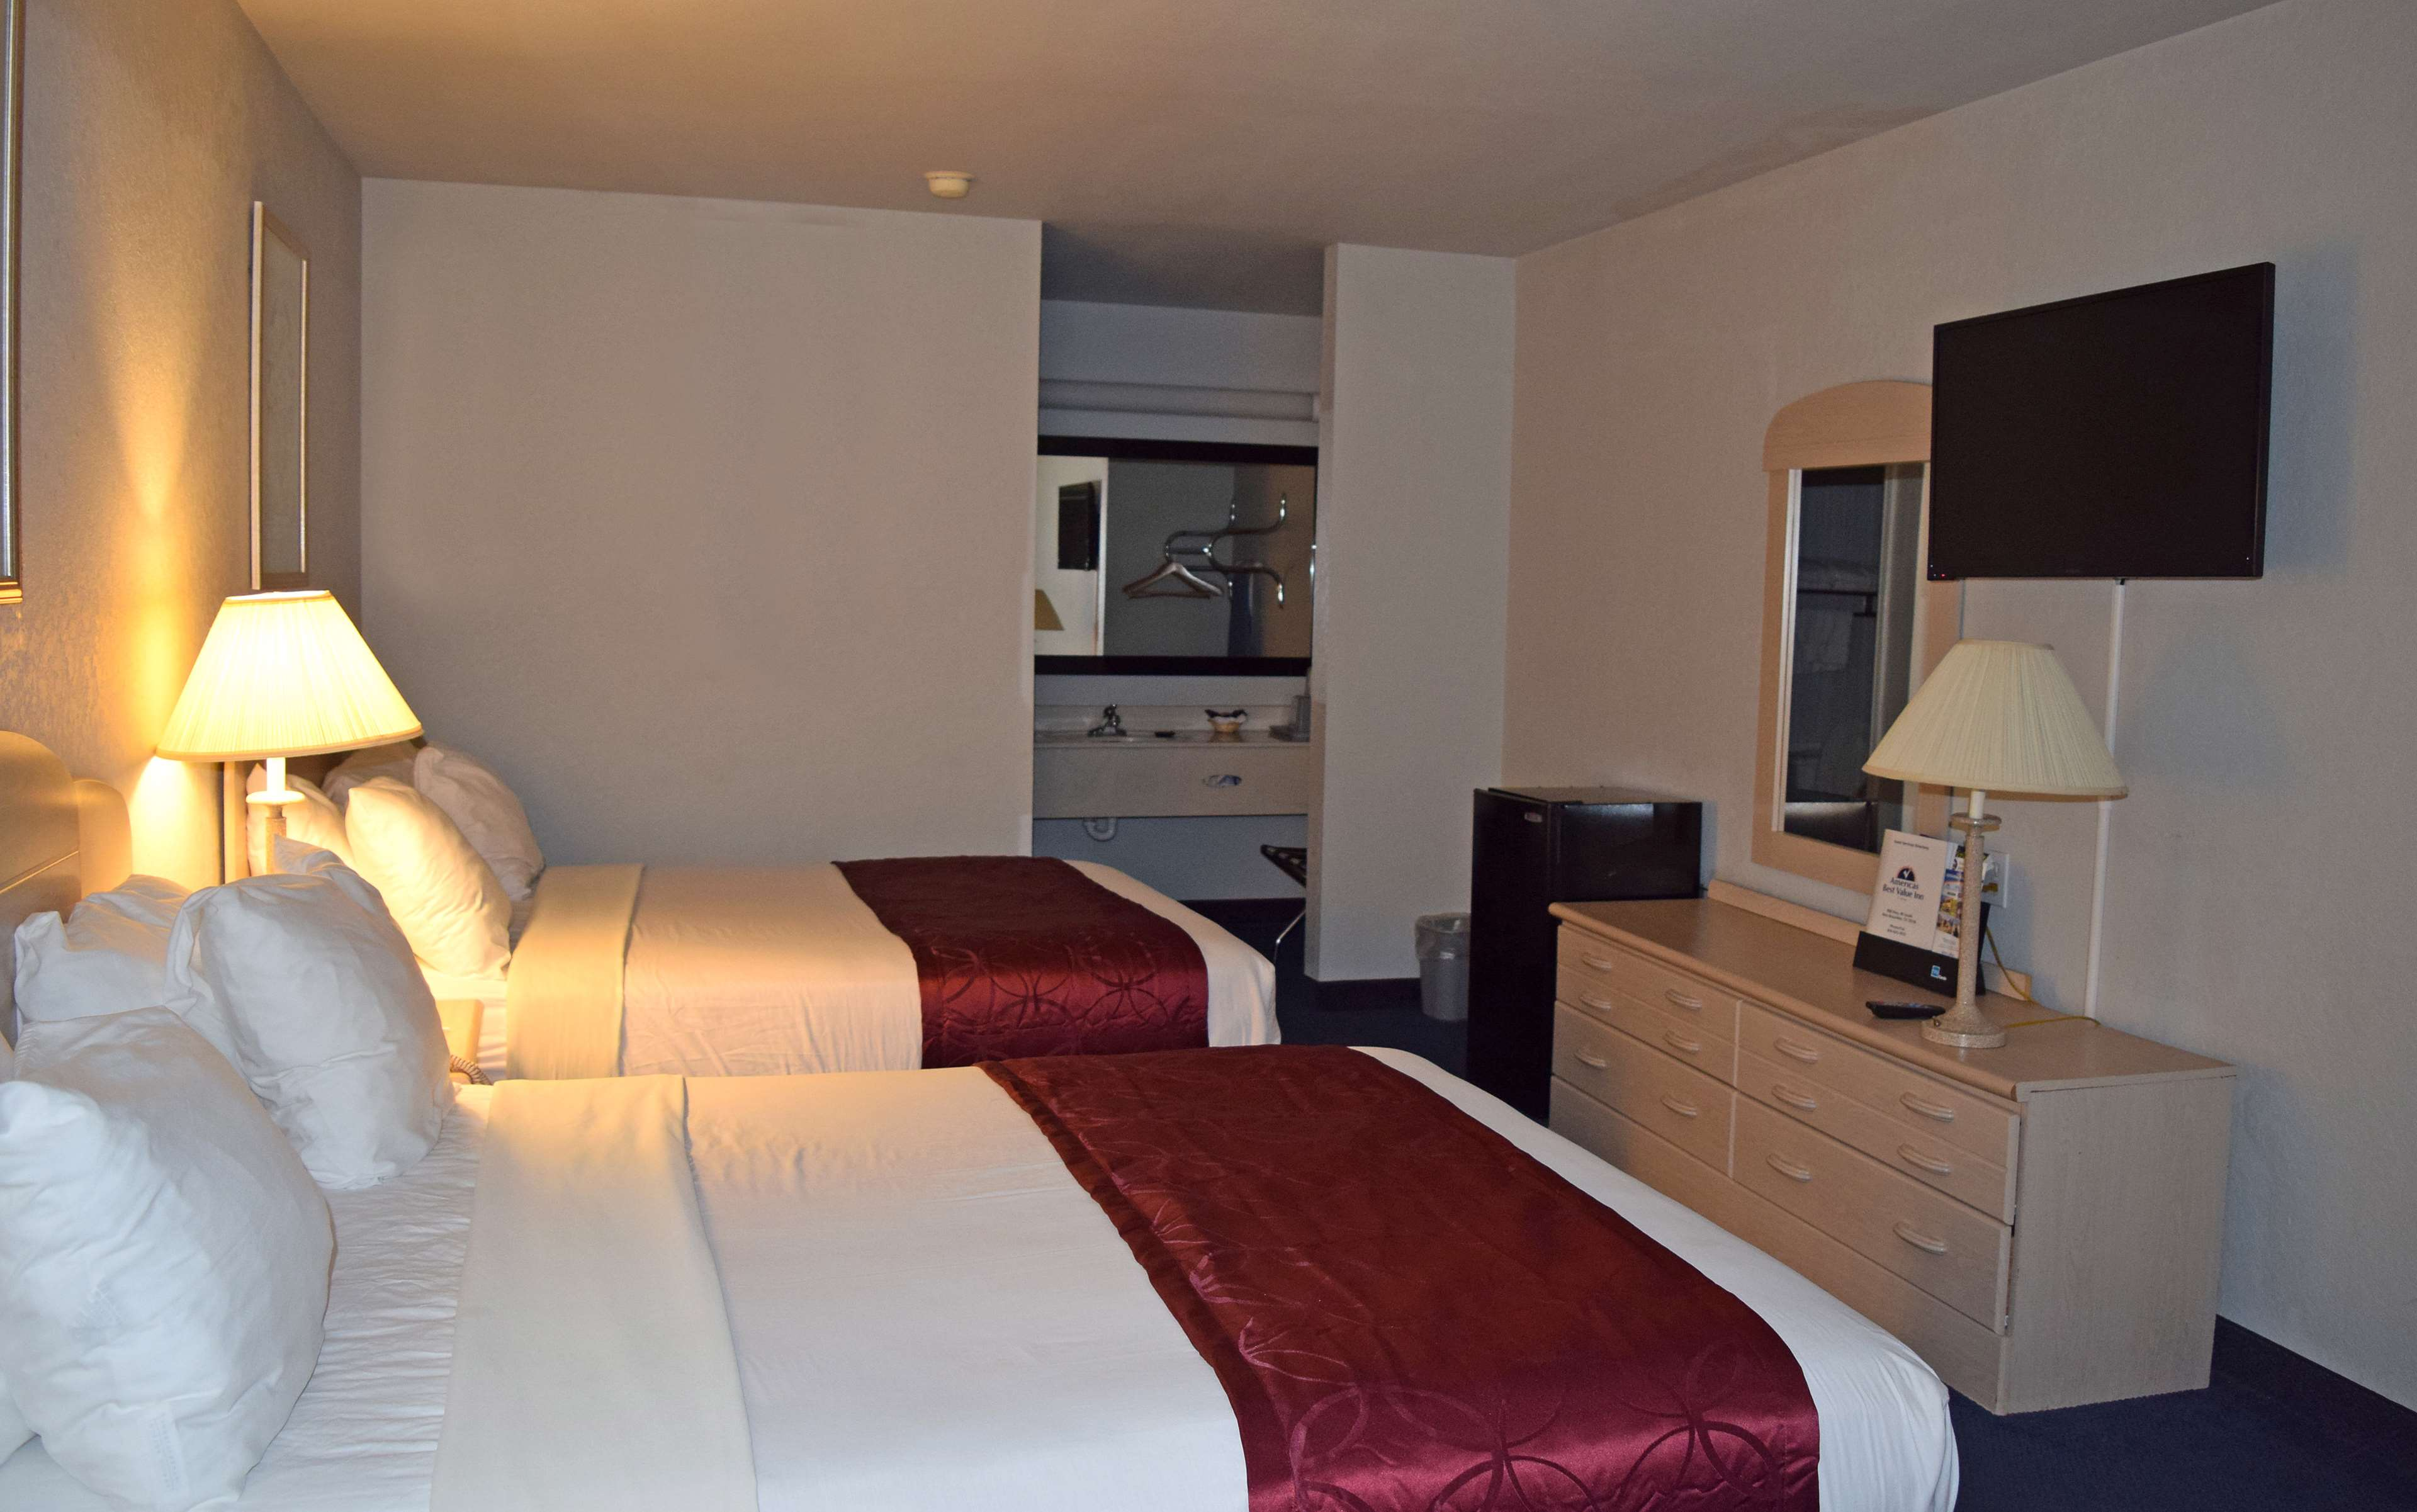 Hotels In New Braunfels With Jacuzzi In Room